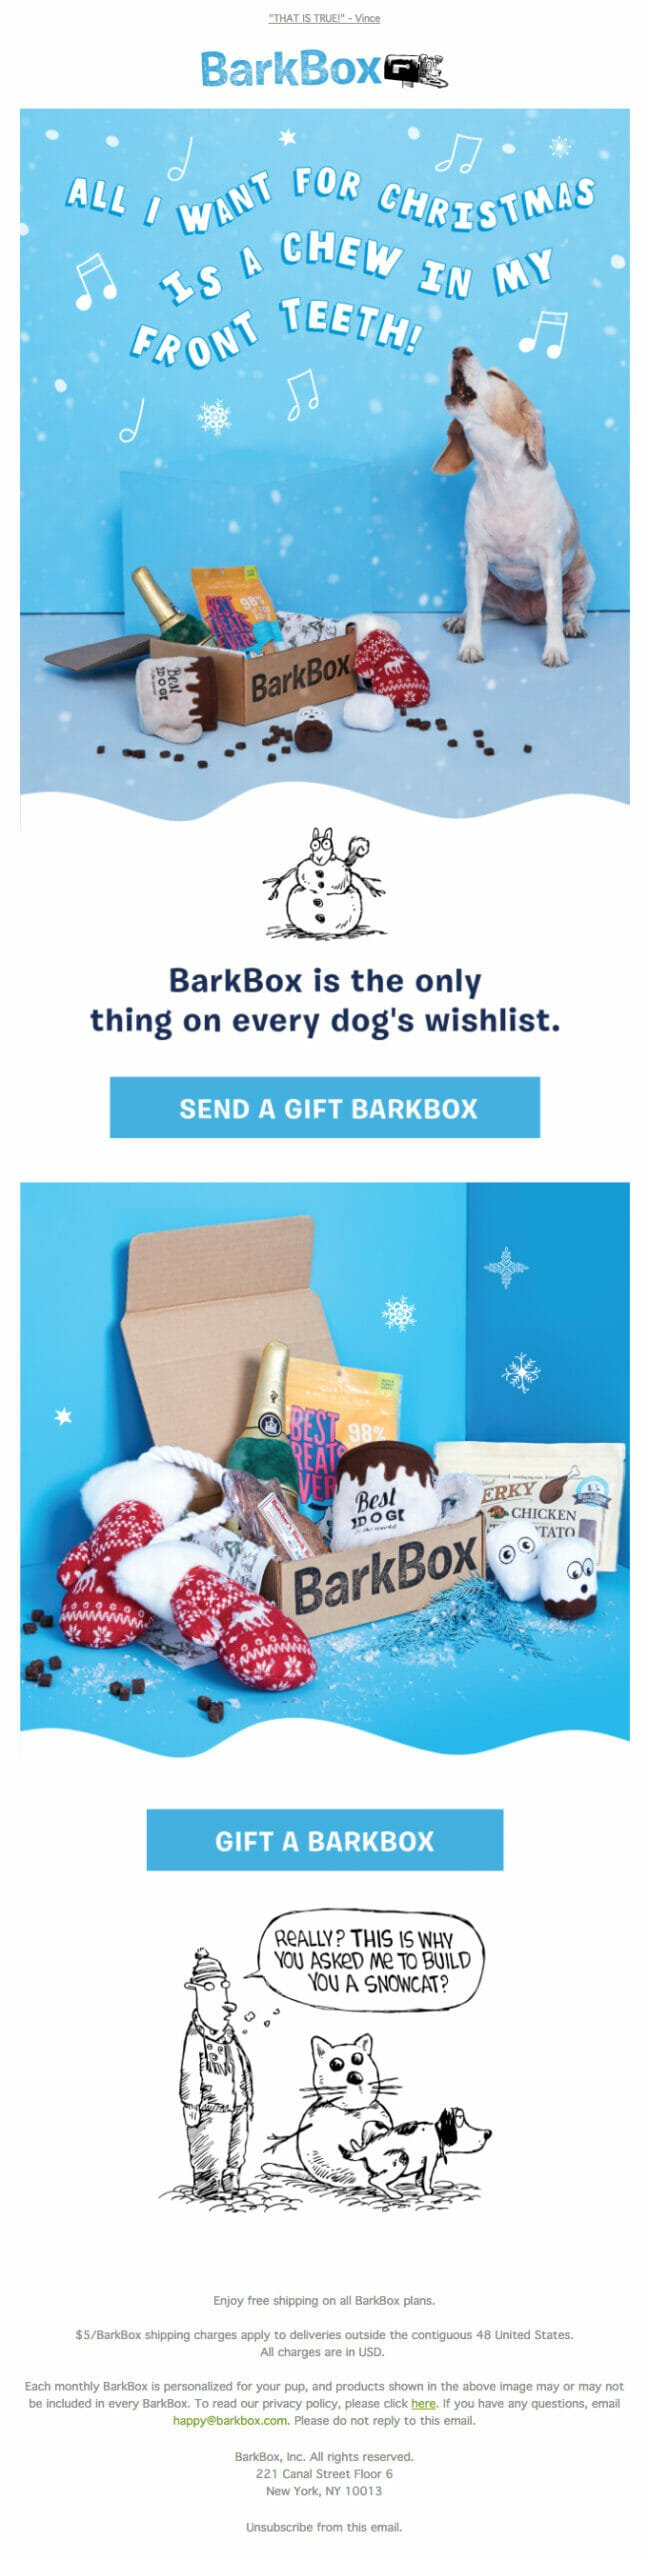 Barkbox is an Email Newsletter Example For Stores Selling Products For Dogs and Christmas